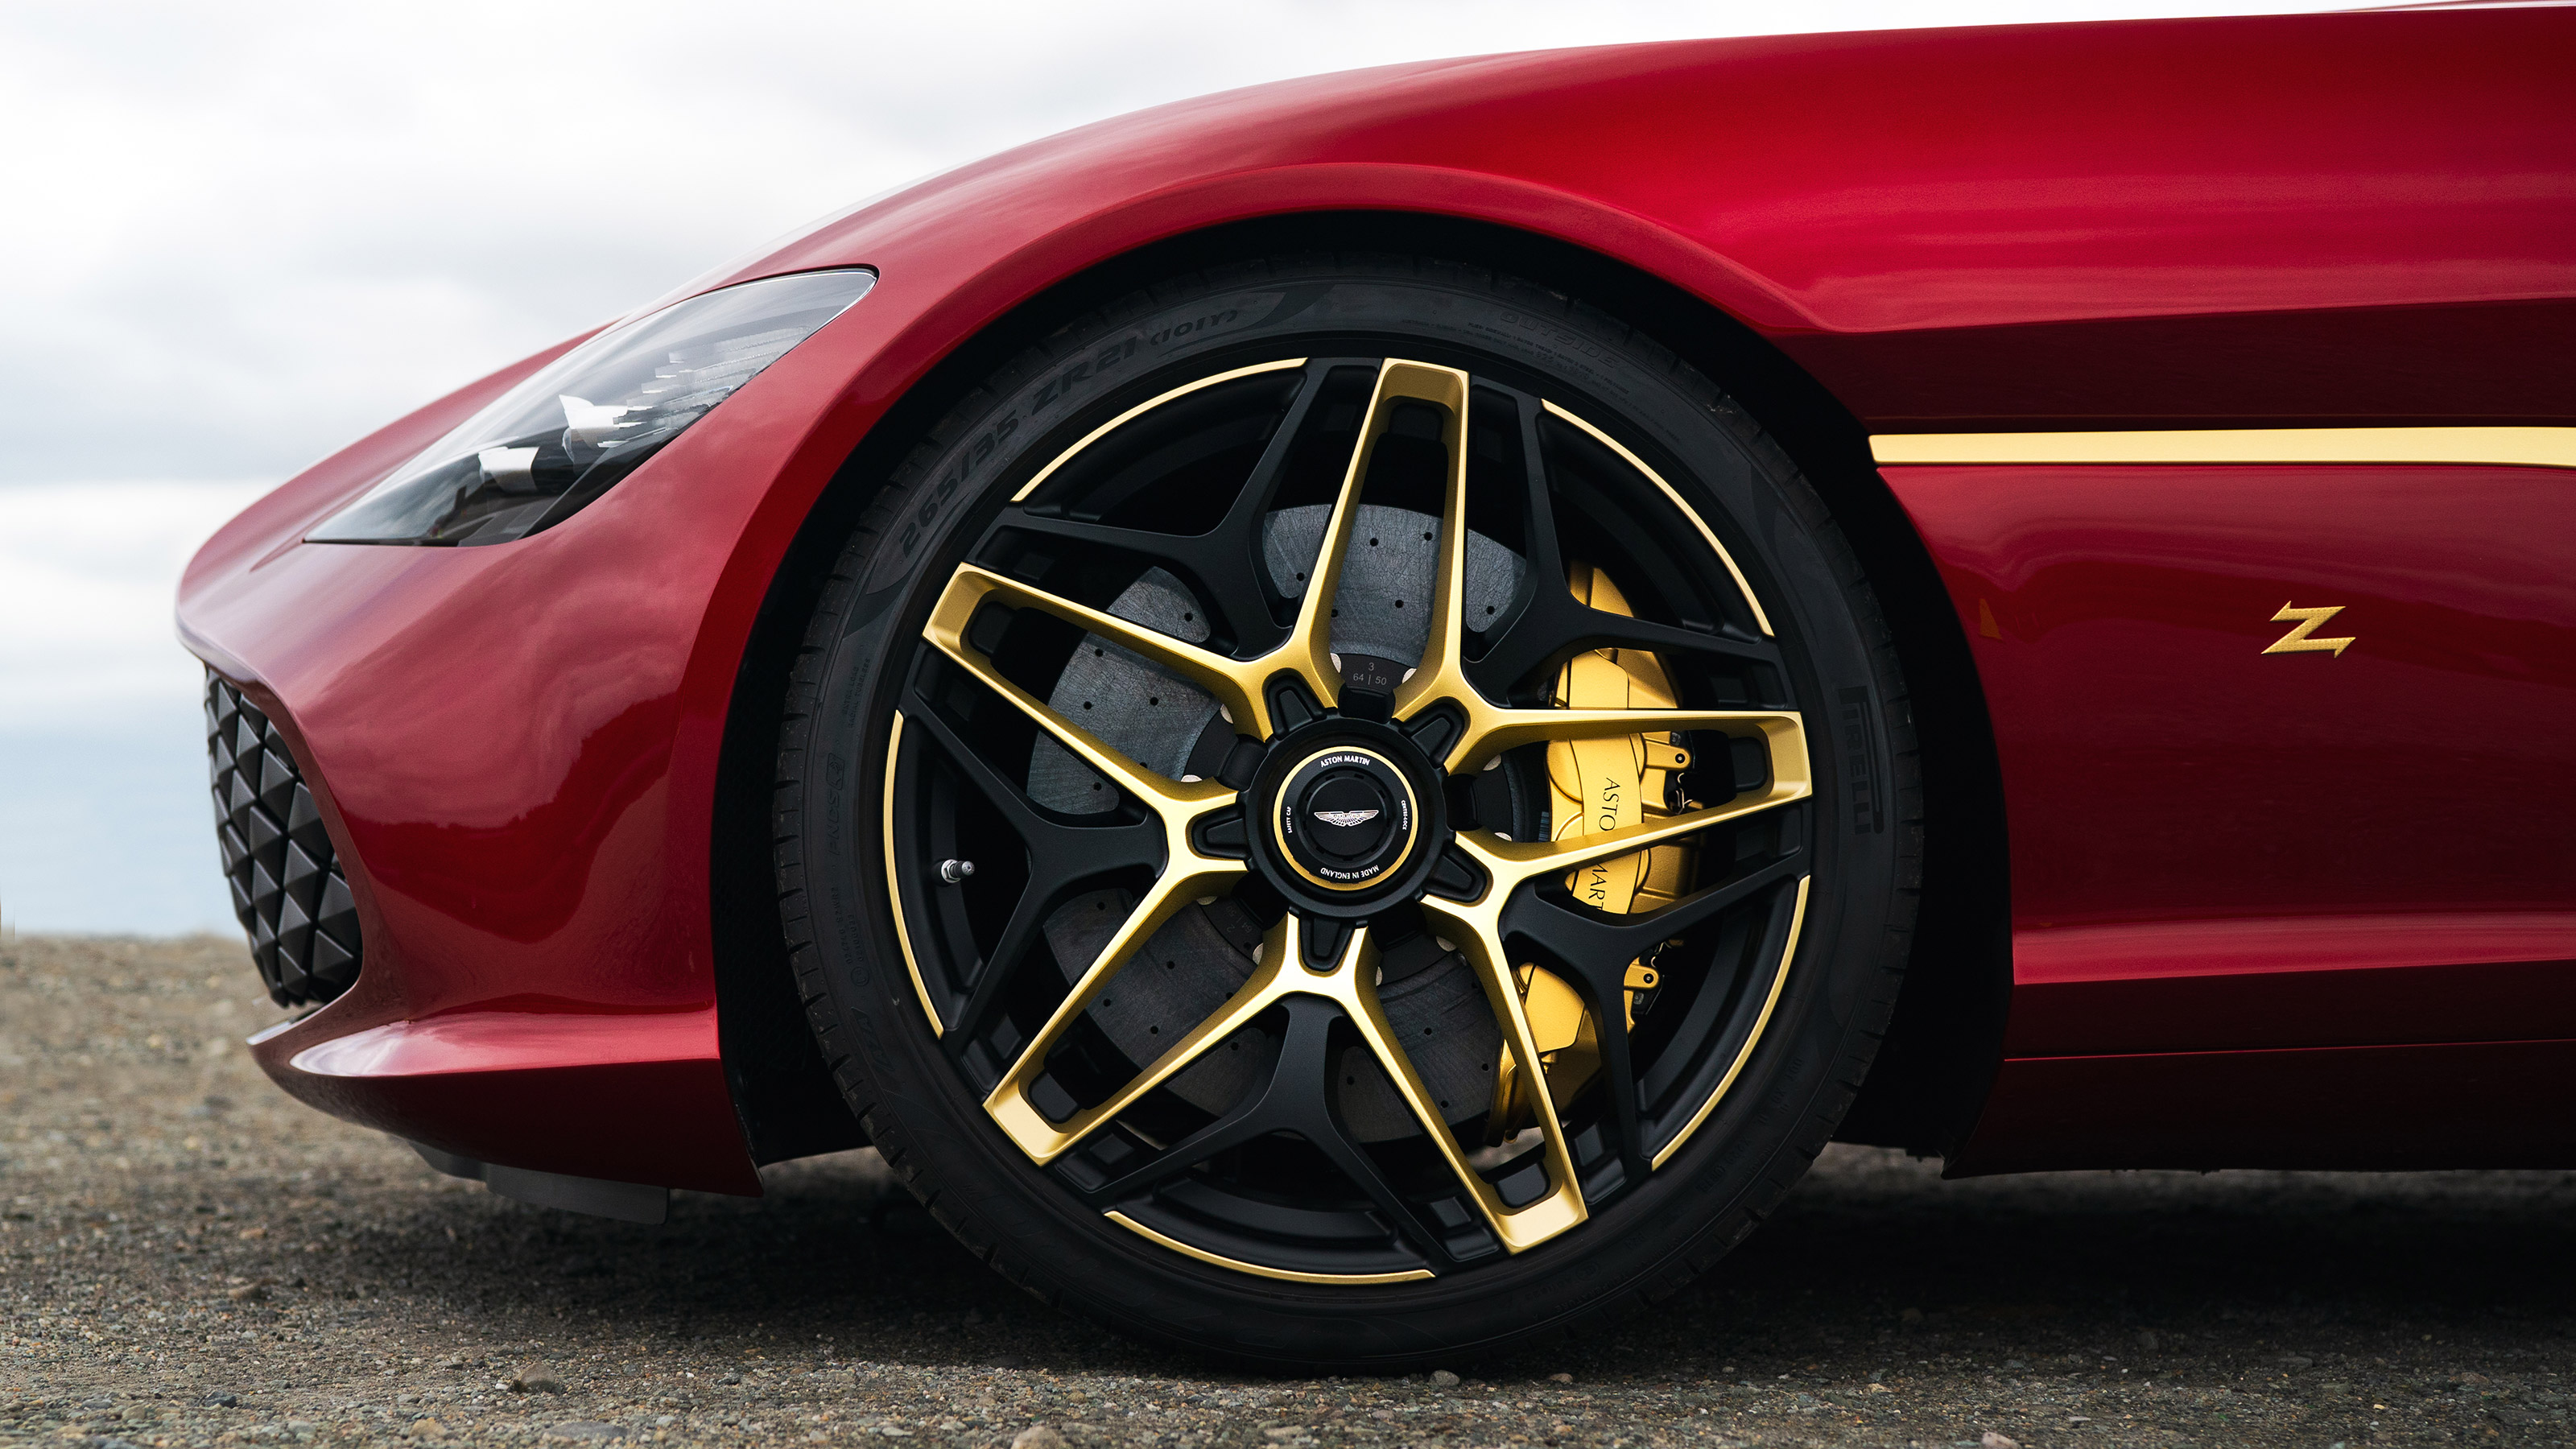 760bhp Aston Martin Dbs Gt Zagato Revealed With 3d Printed Gold Details Evo